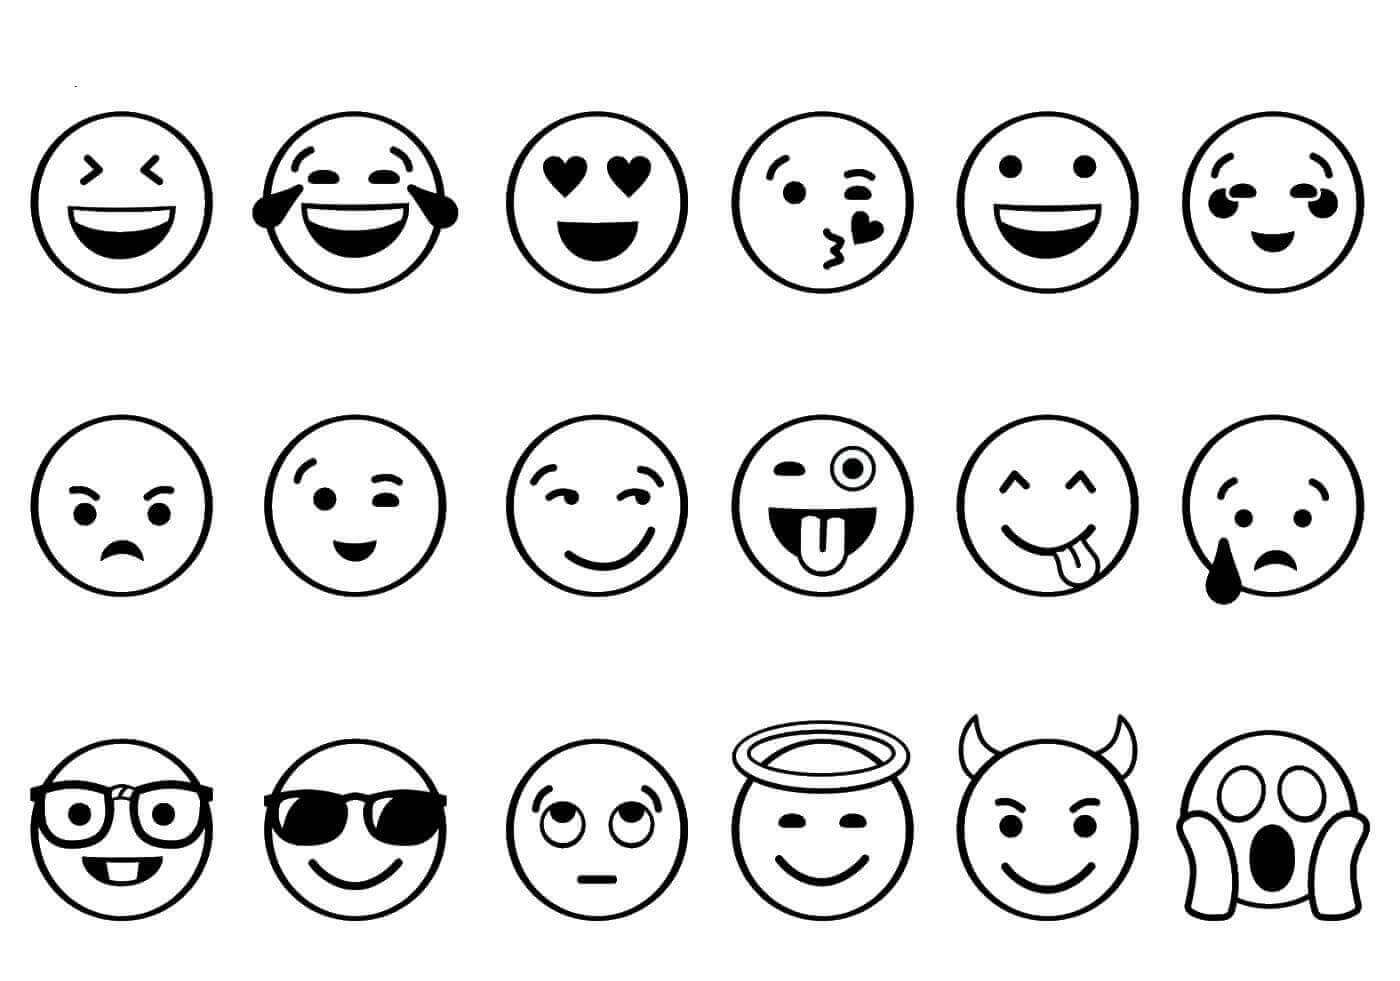 Coloring Pages ~ Emojing Pages Free Printable Sped Incredible Online - Free Printable Emoji Faces